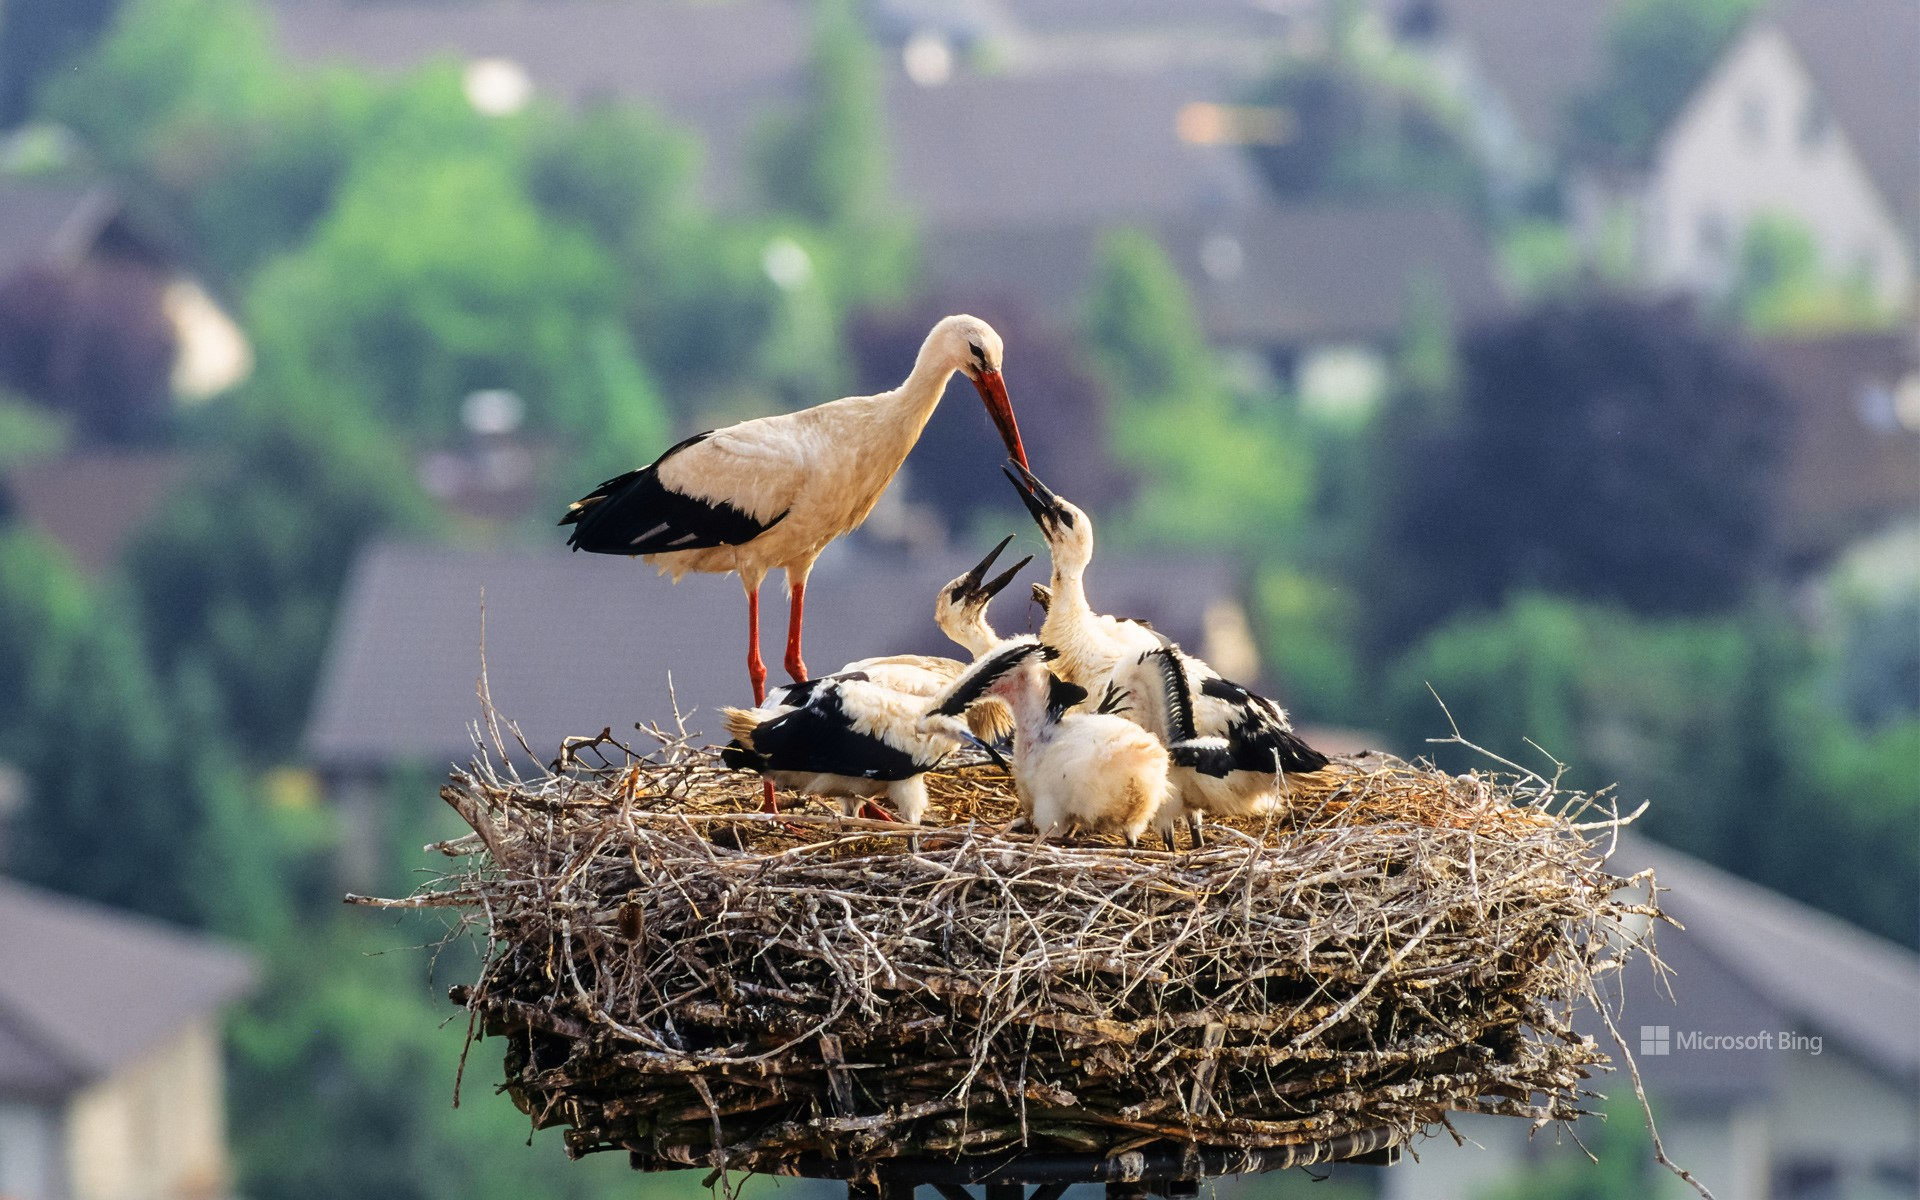 White stork with chicks in the nest, Germany